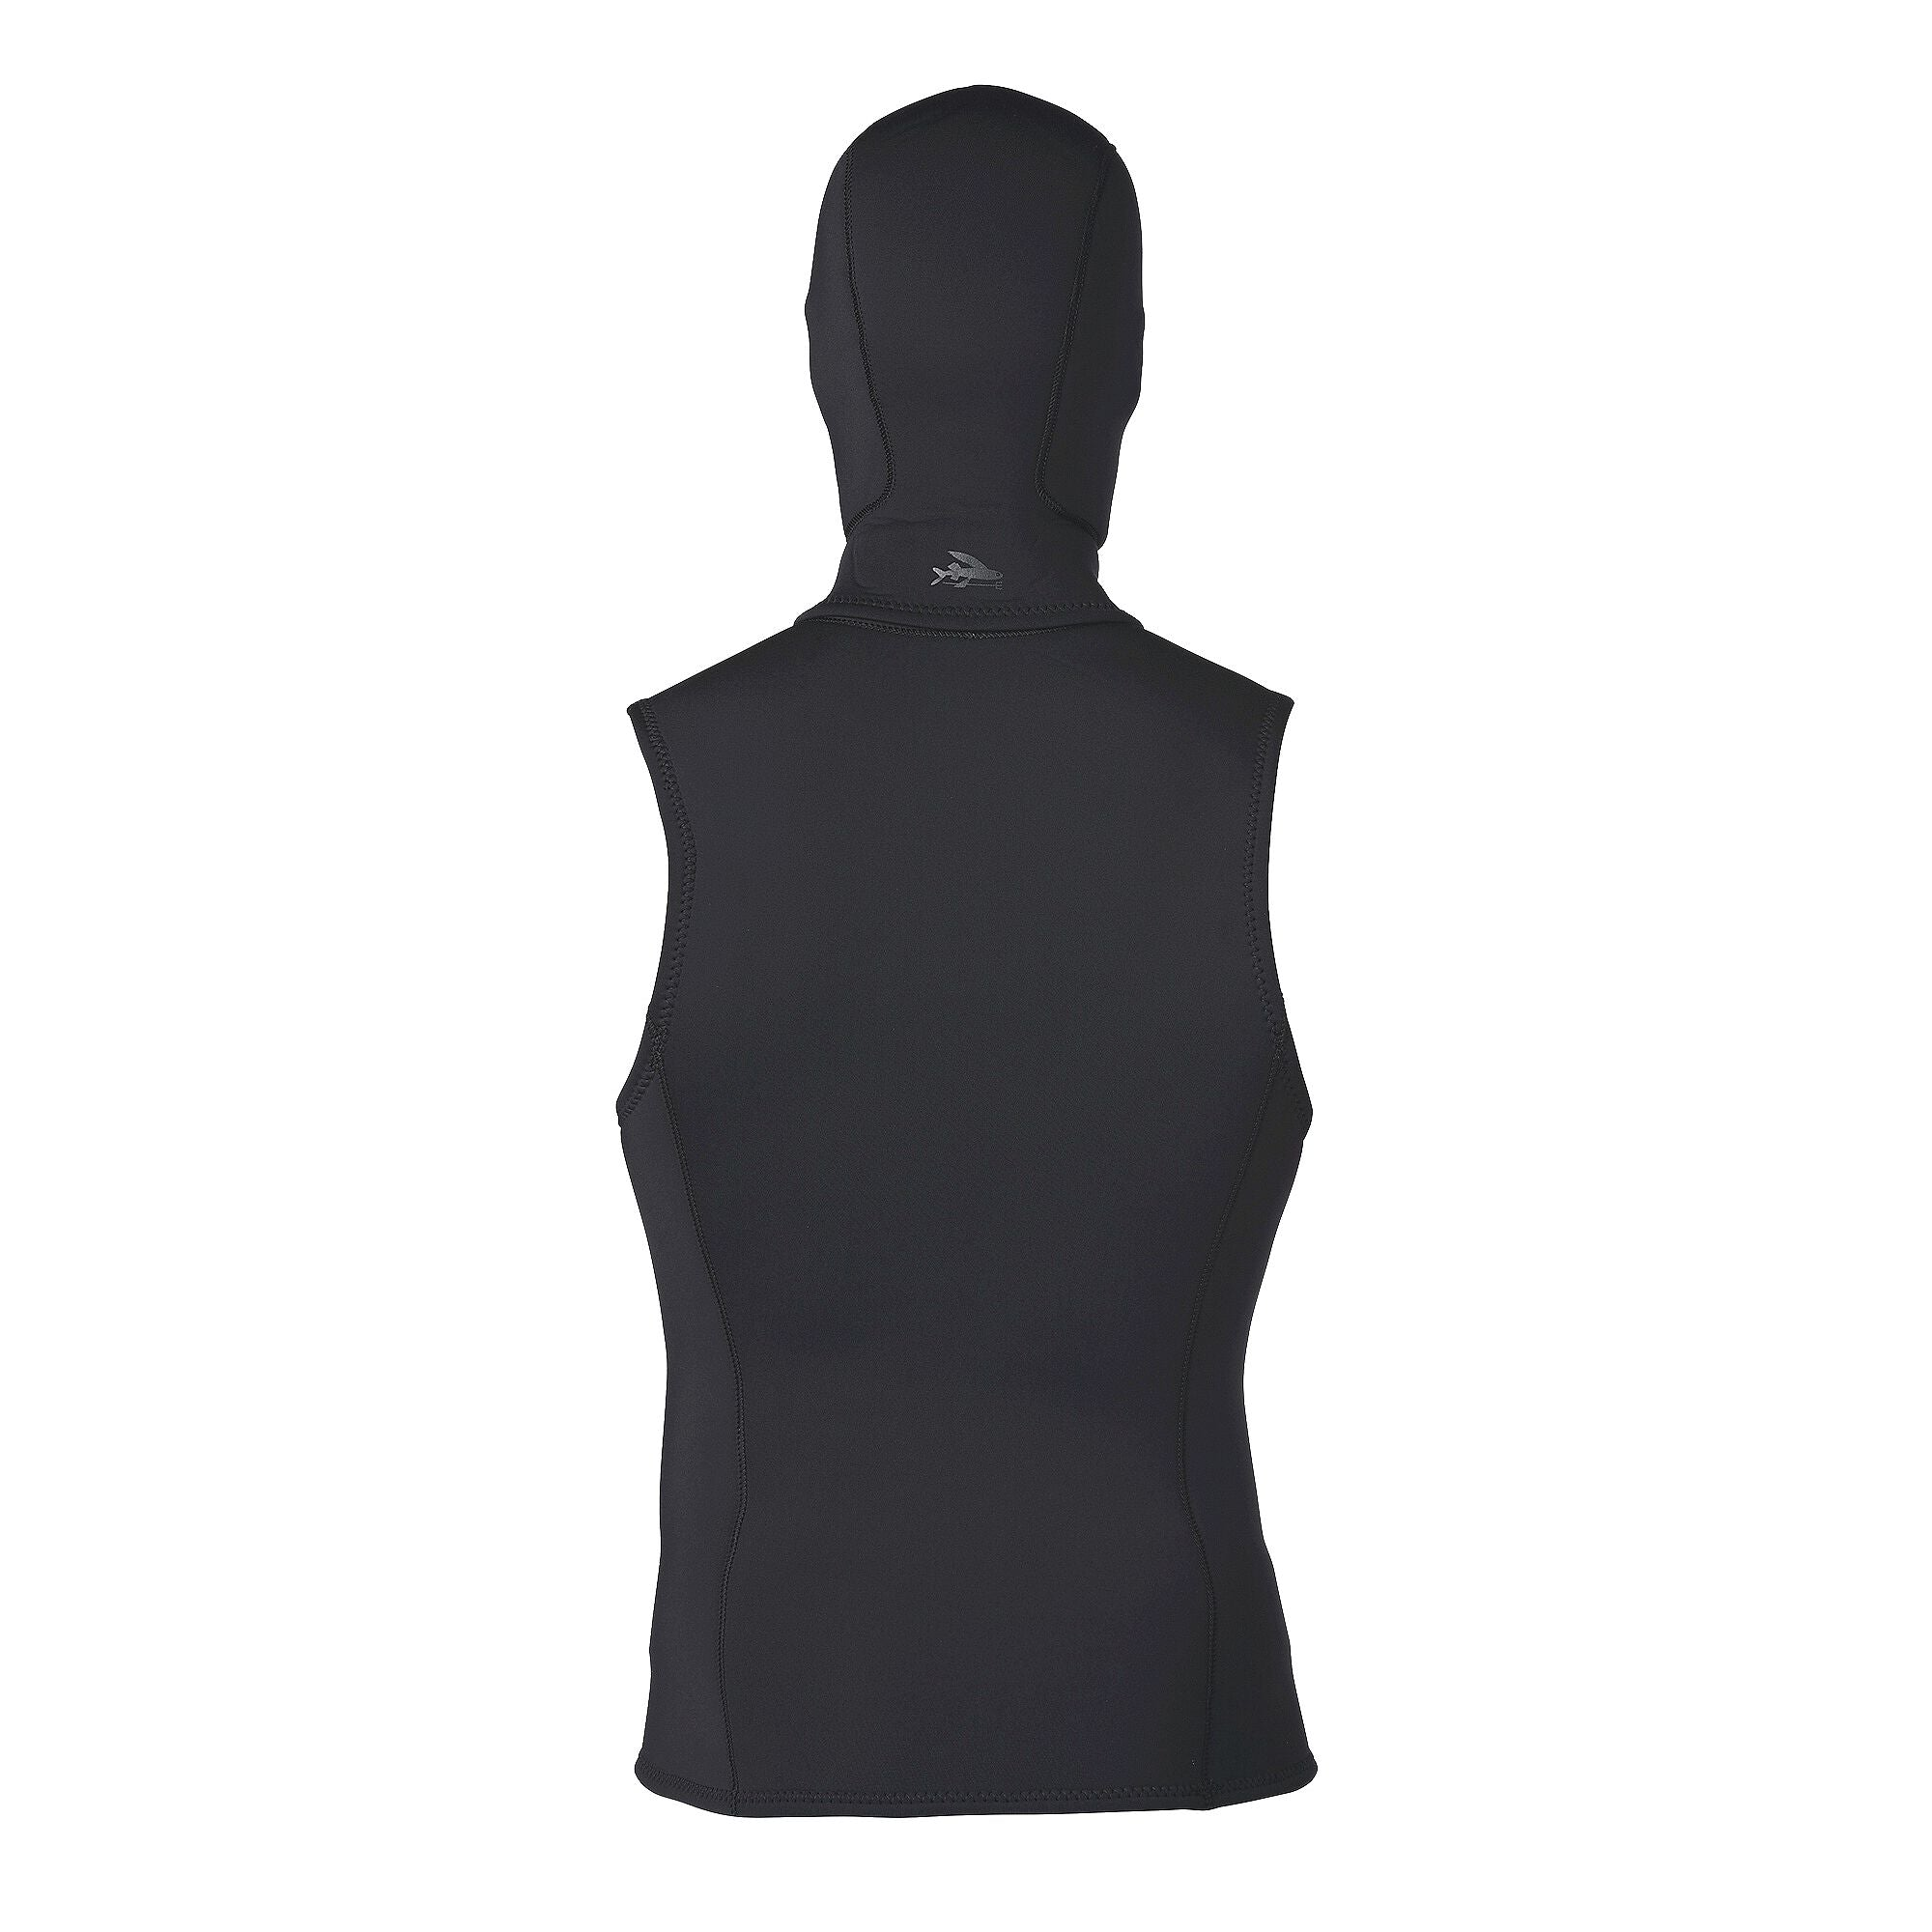 Chaleco Surf Hombre con Capucha Water Heater Hooded Vest Negro Patagonia